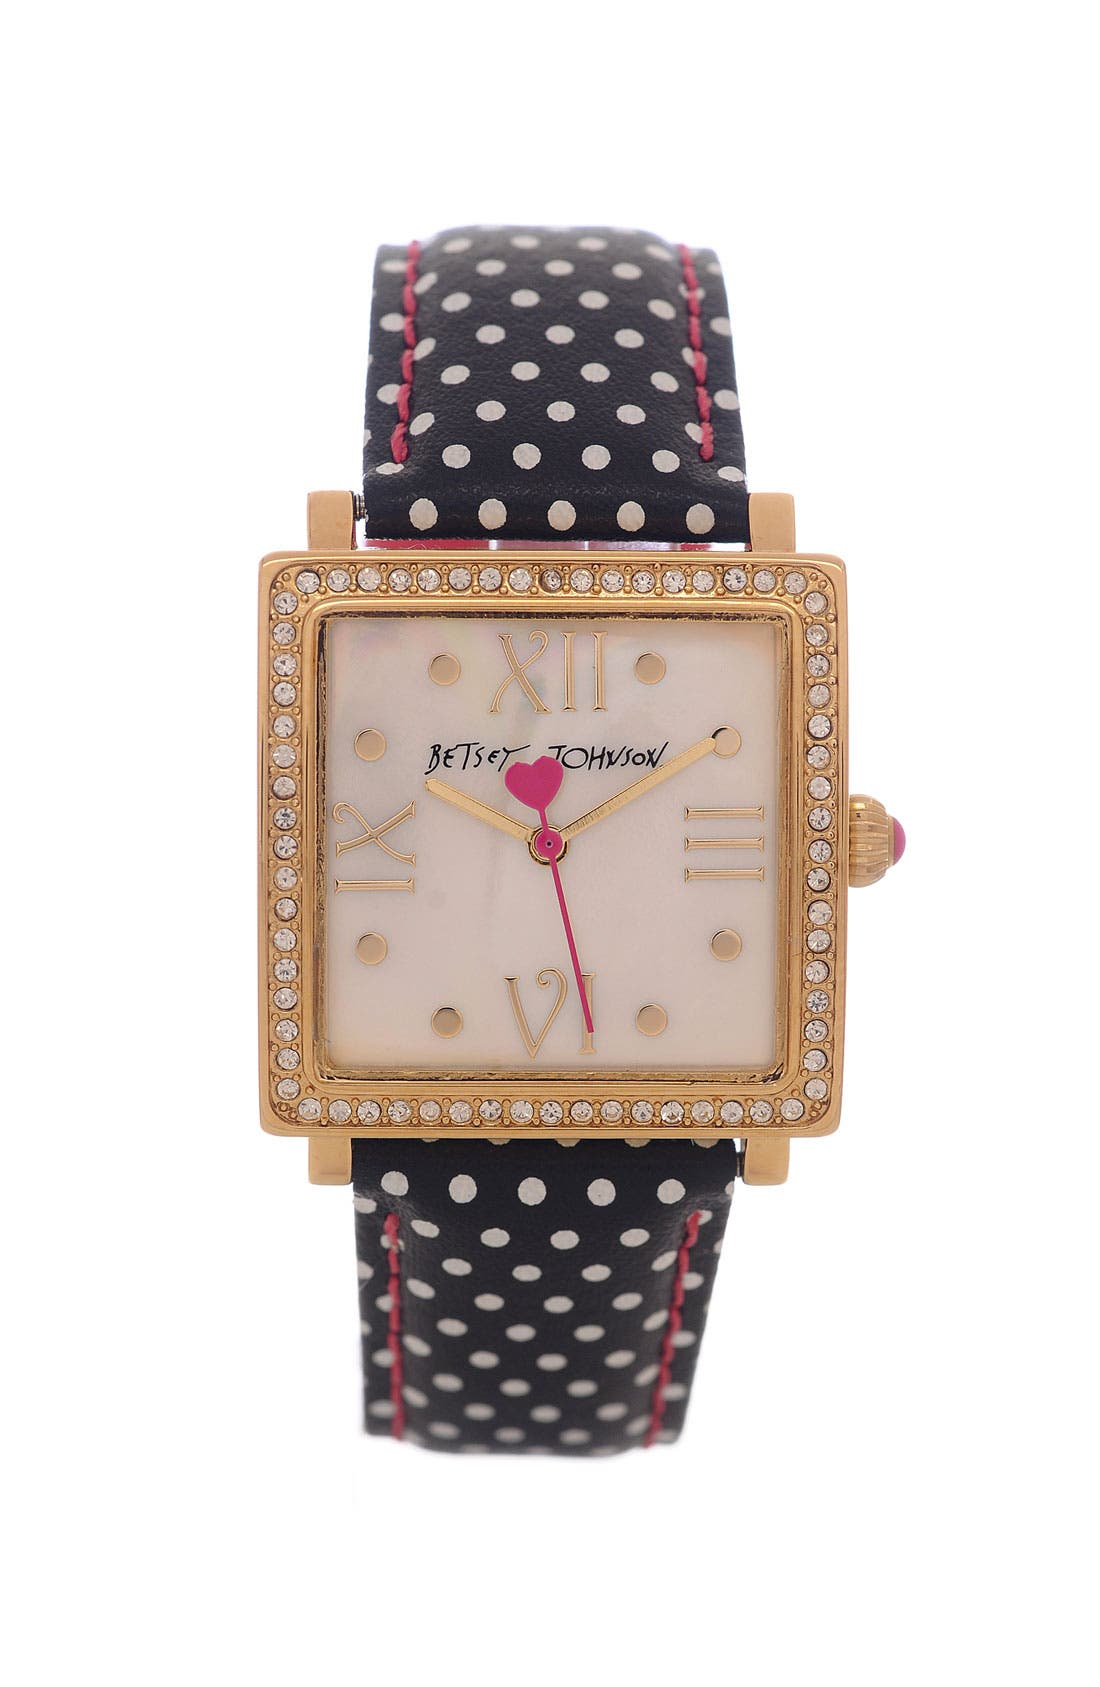 Main Image - Betsey Johnson 'Bling Bling Time' Square Polka Dot Watch